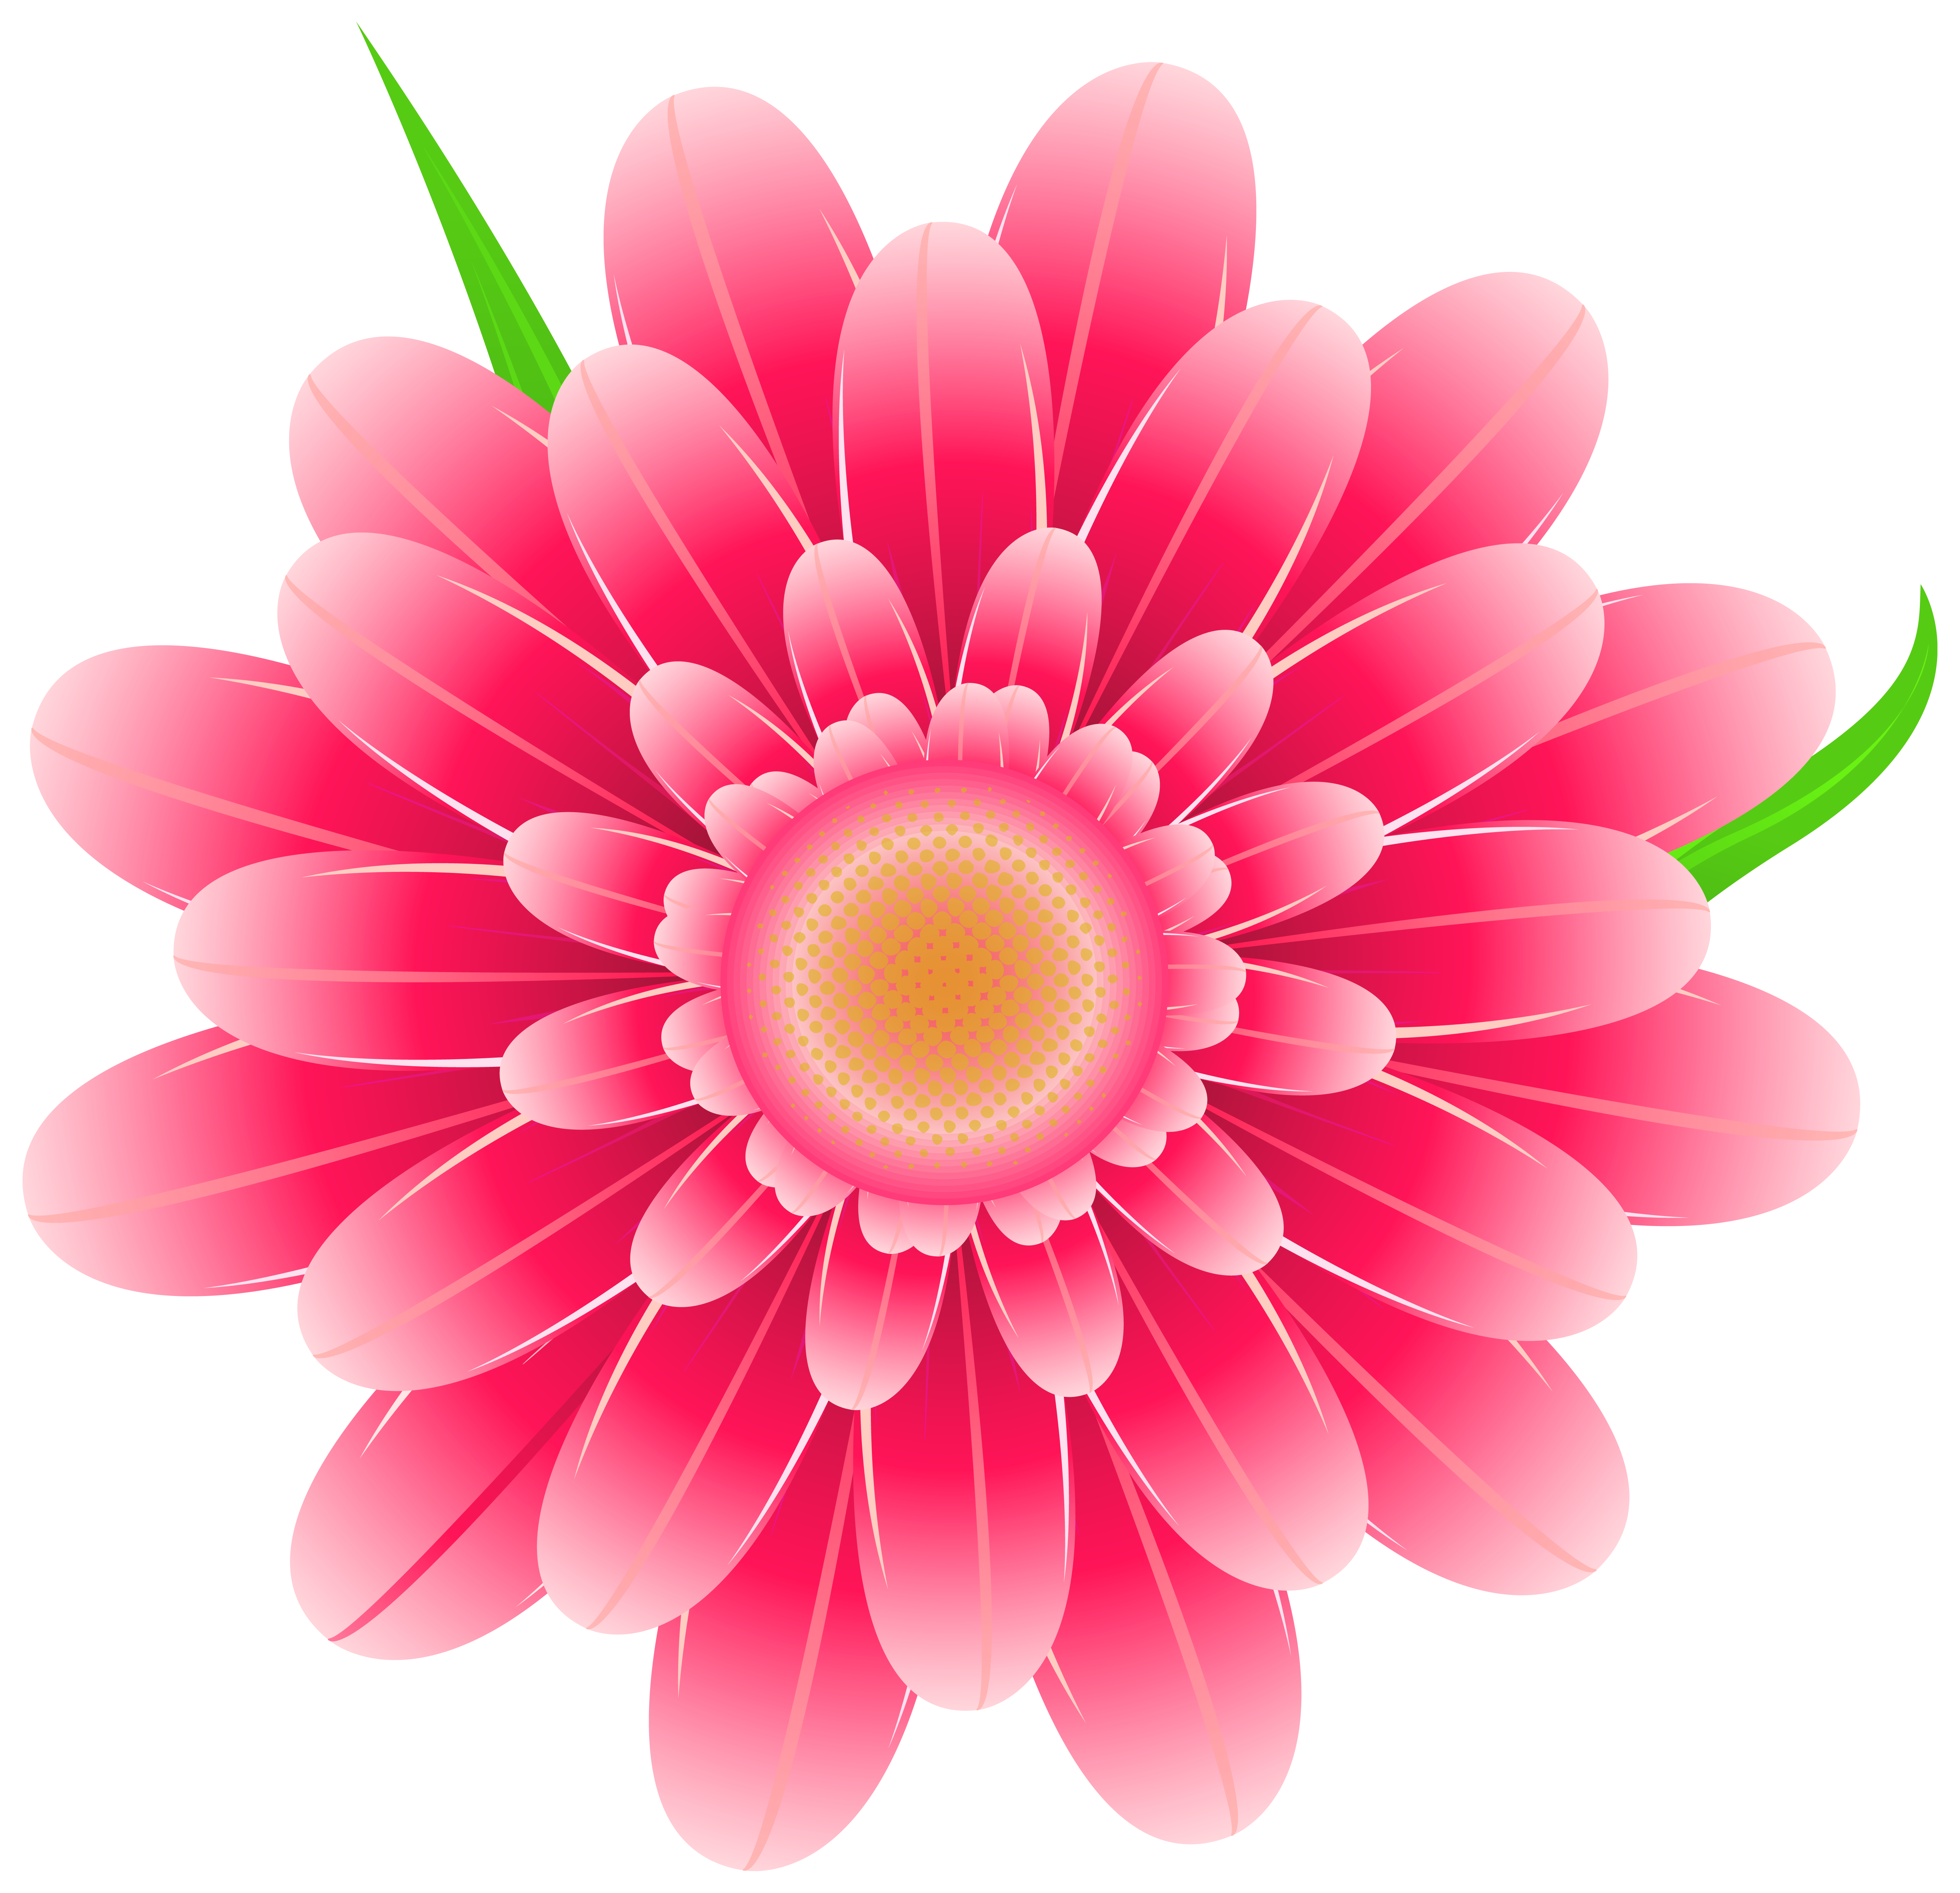 Pink Flower clipart #5, Download drawings